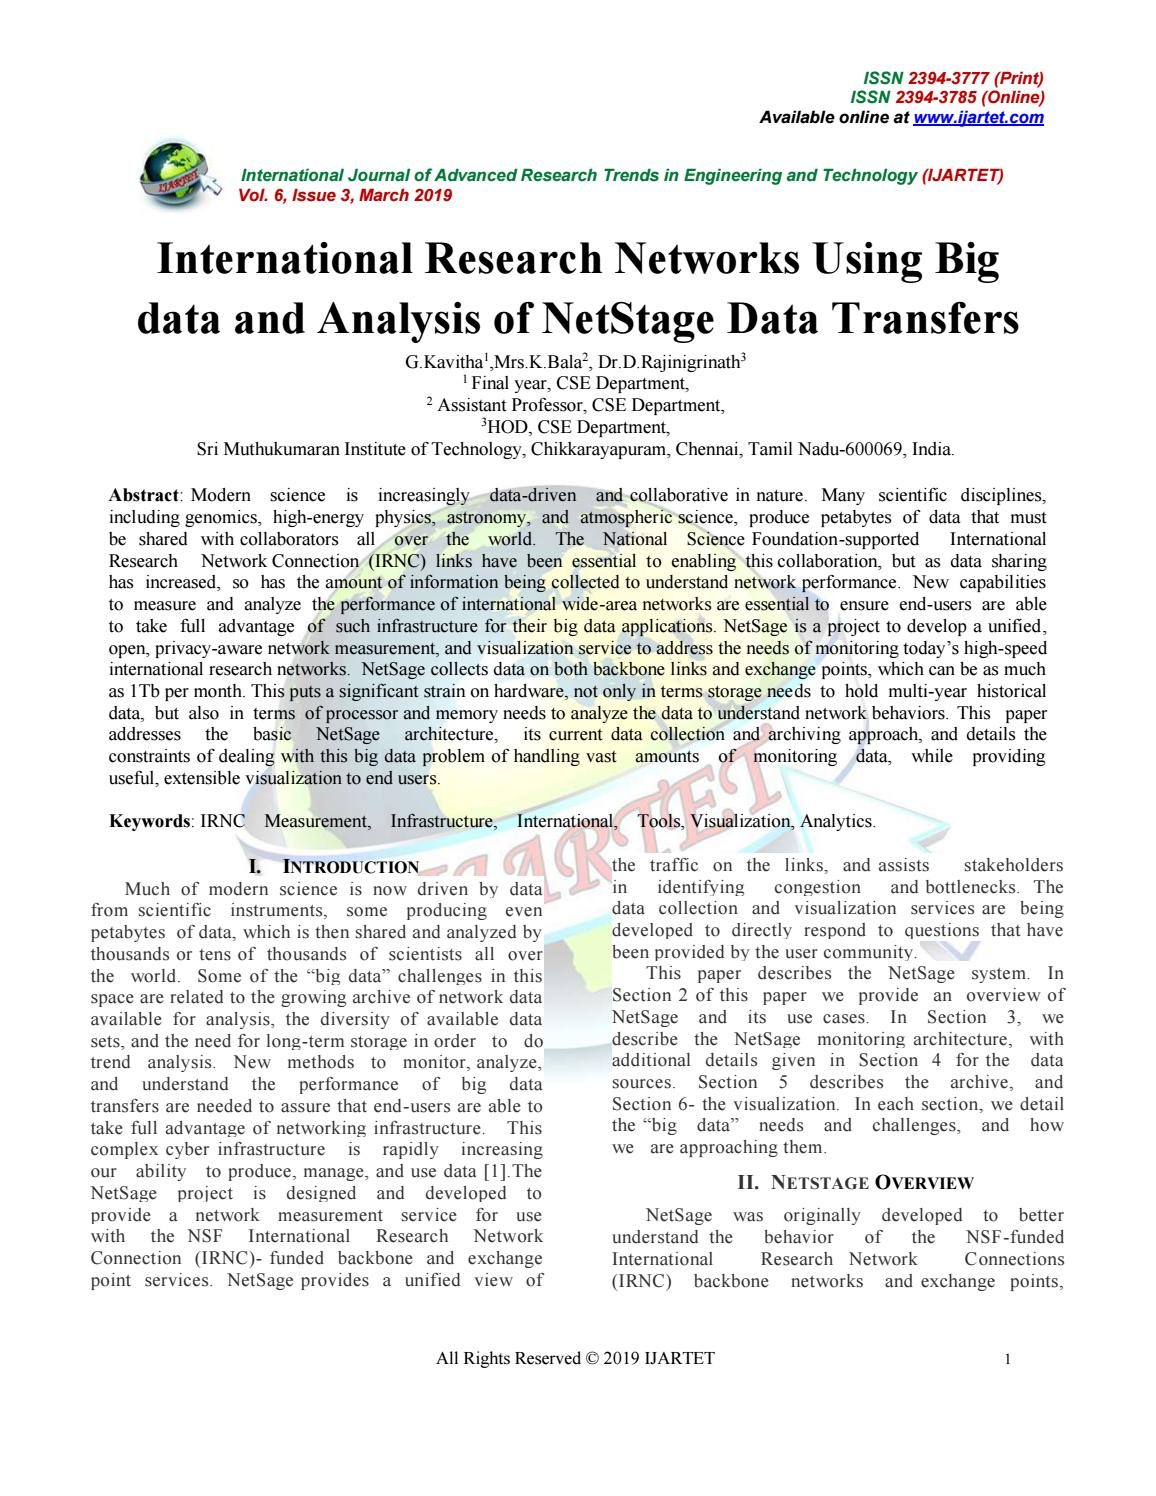 International Research Networks Using Big data and Analysis